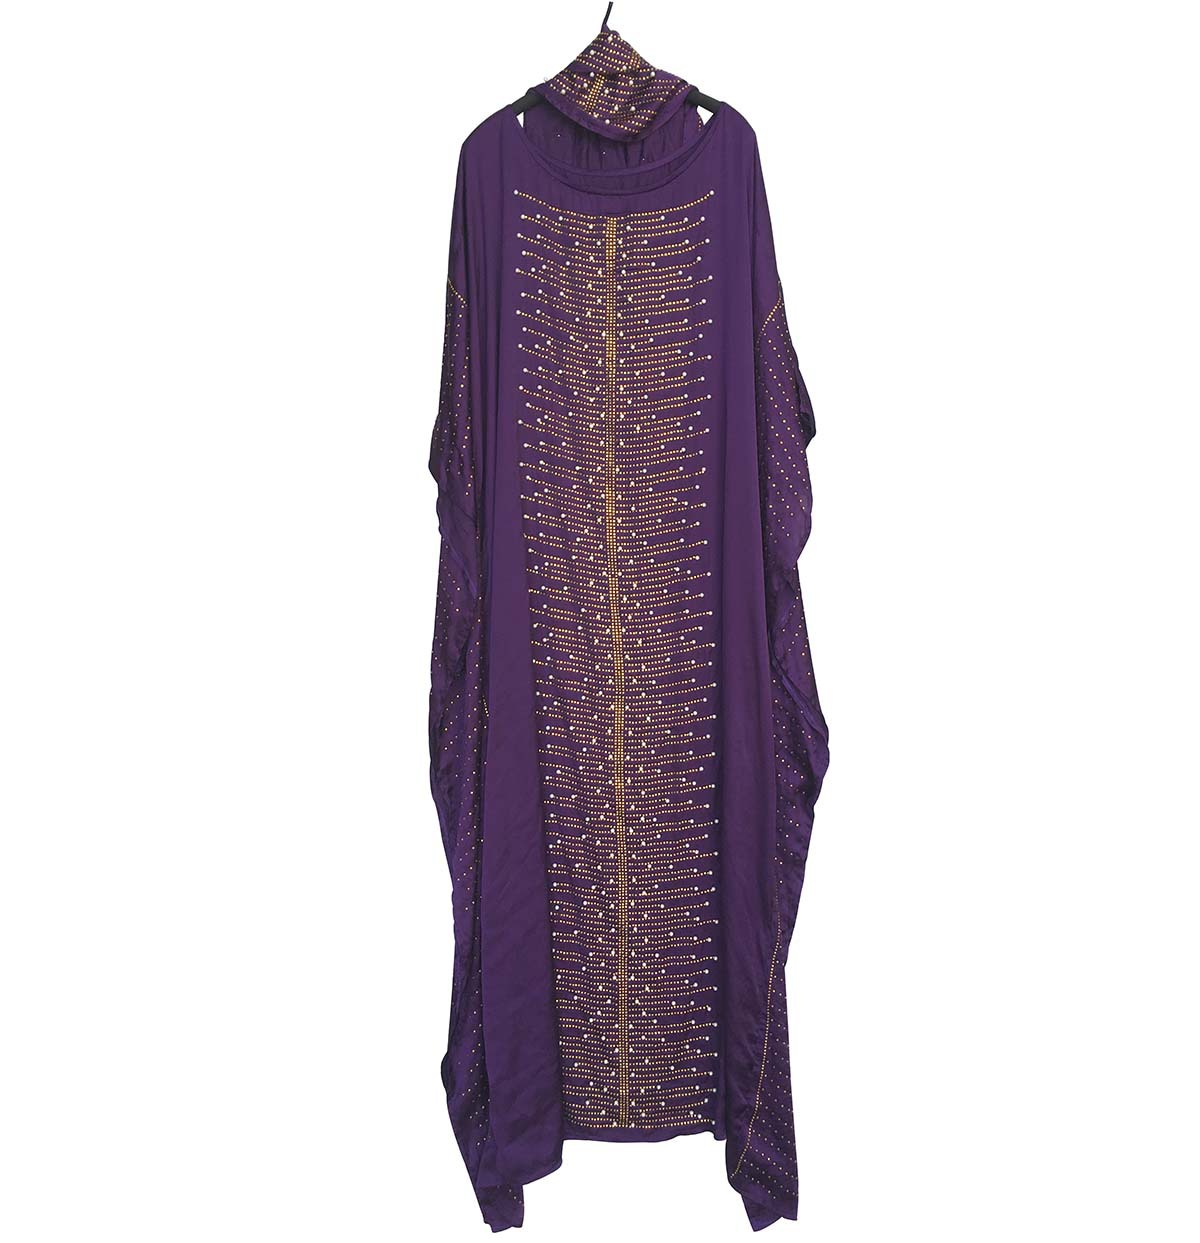 Image 4 - African Dresses For Women 2019 Africa Clothing Muslim Long Dress High Quality Length Fashion African Dress For Lady-in Africa Clothing from Novelty & Special Use